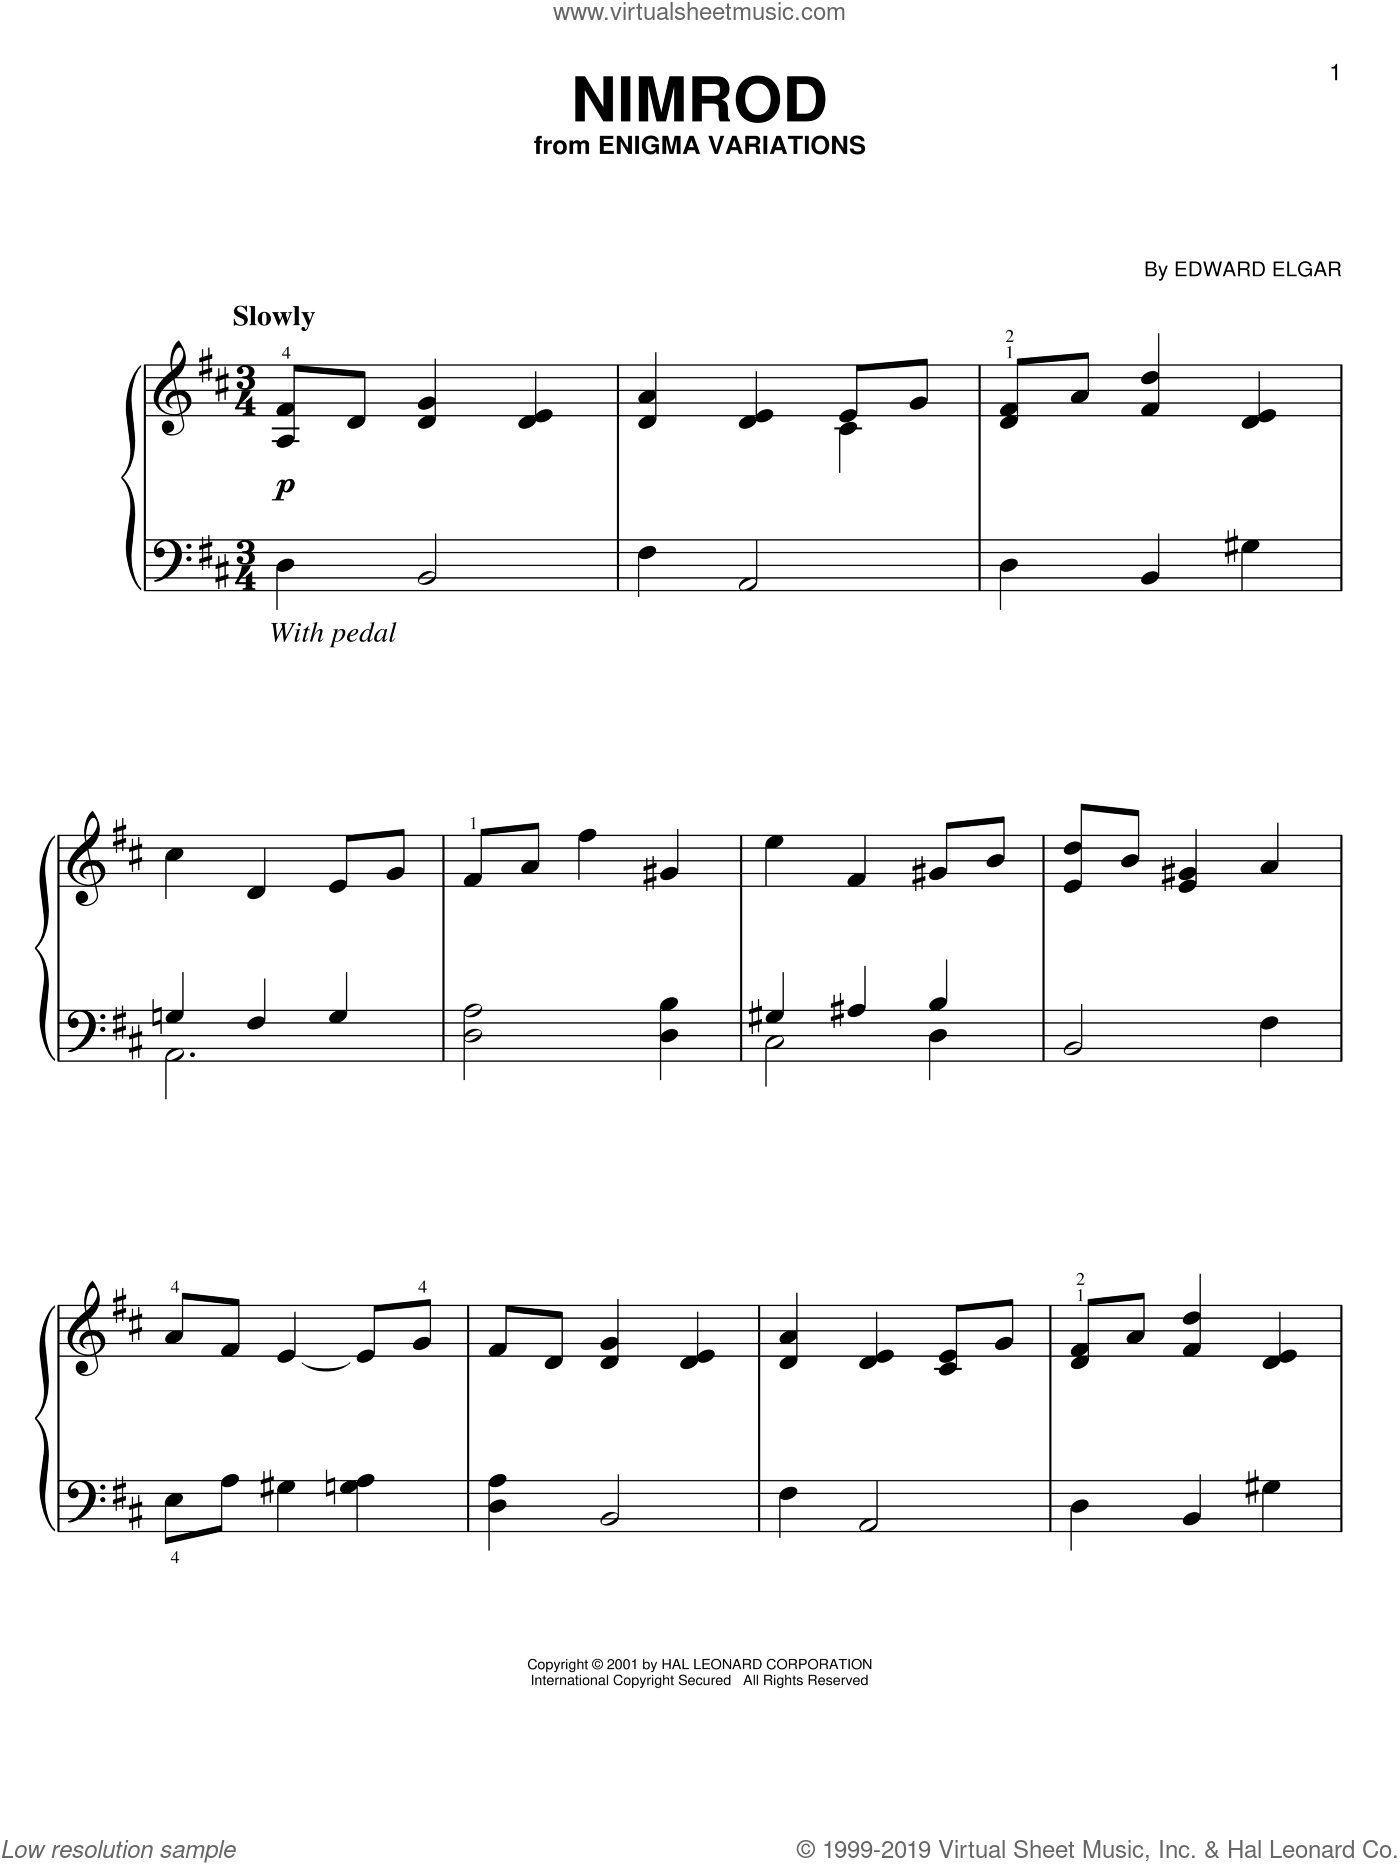 Nimrod sheet music for piano solo by Edward Elgar, classical score, easy skill level